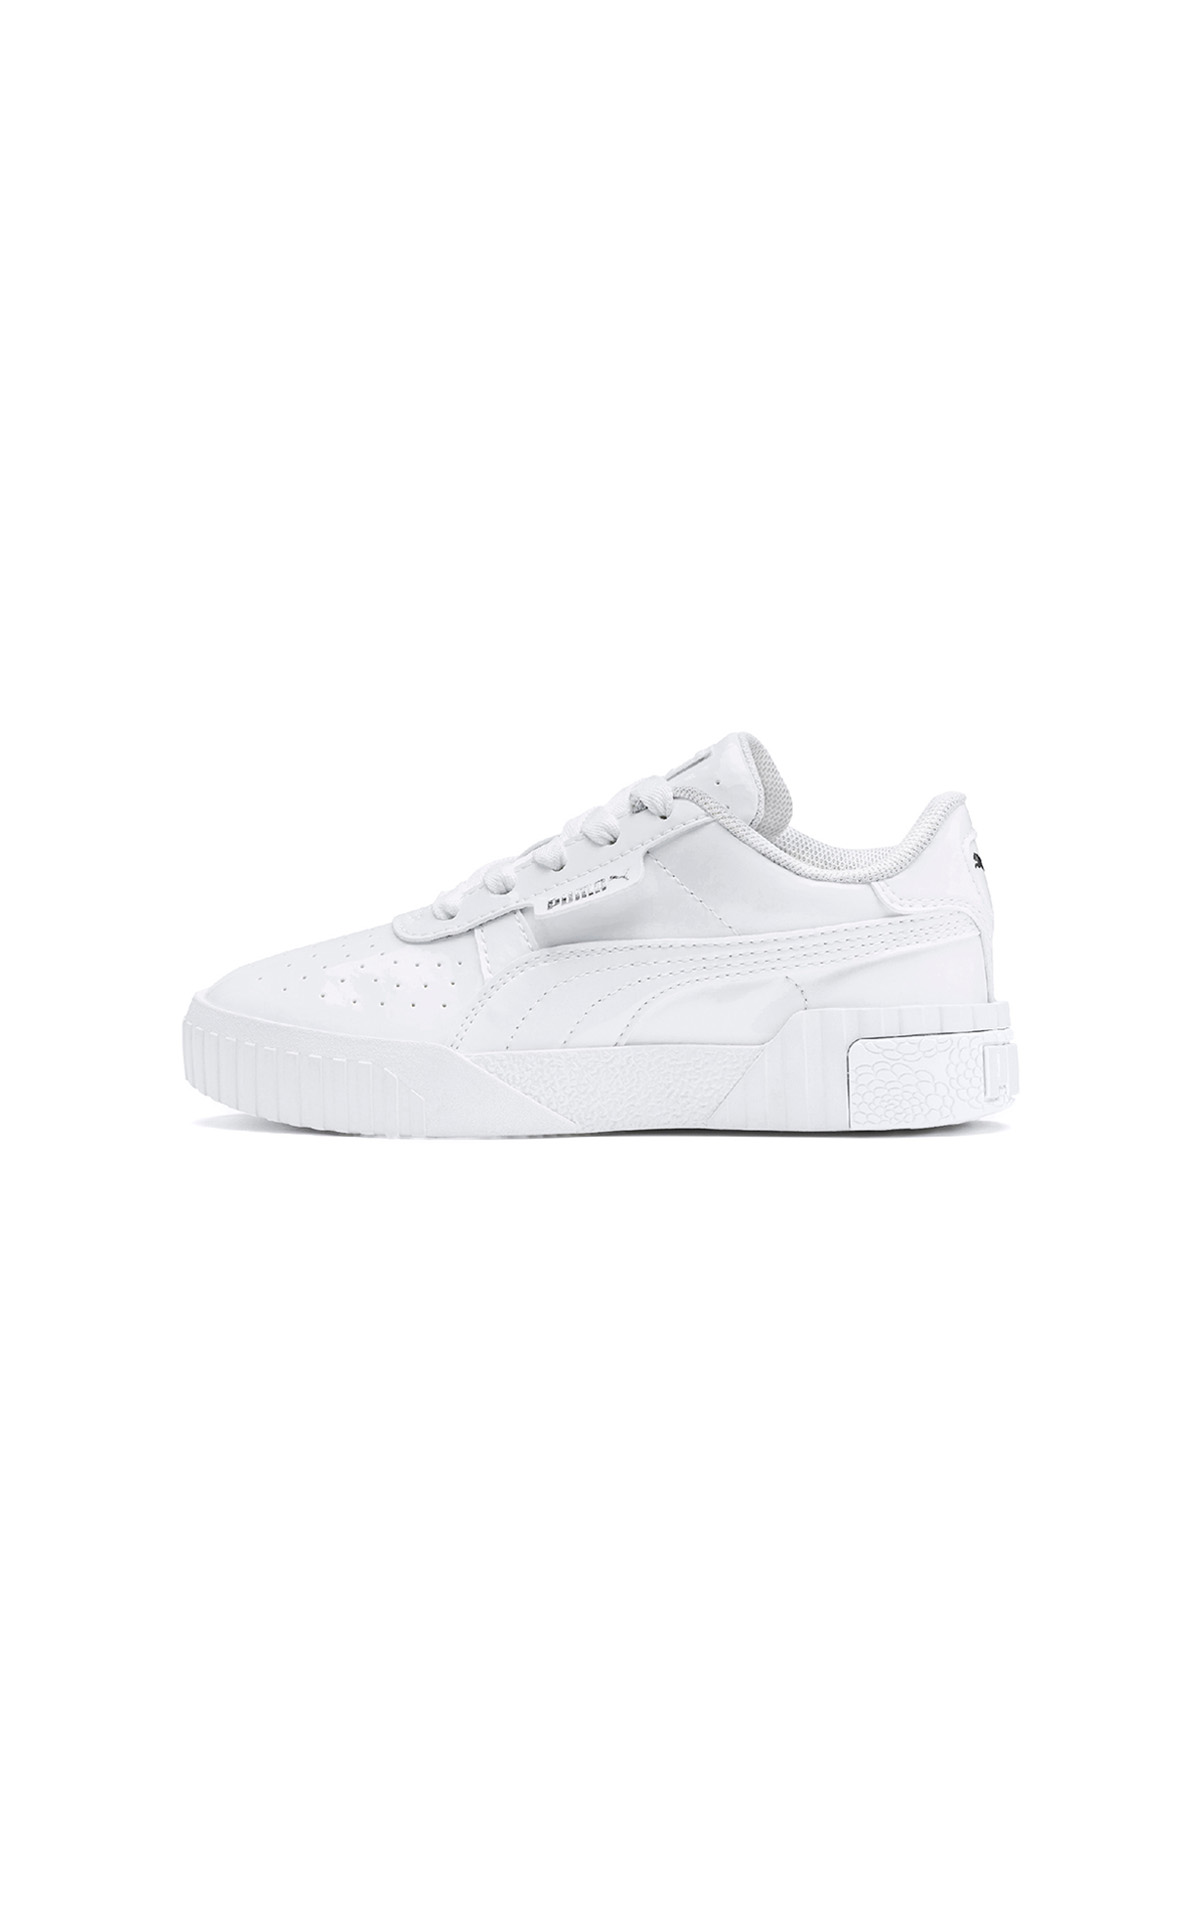 PUMA Cali patent PS in white at The Bicester Village Shopping Collection